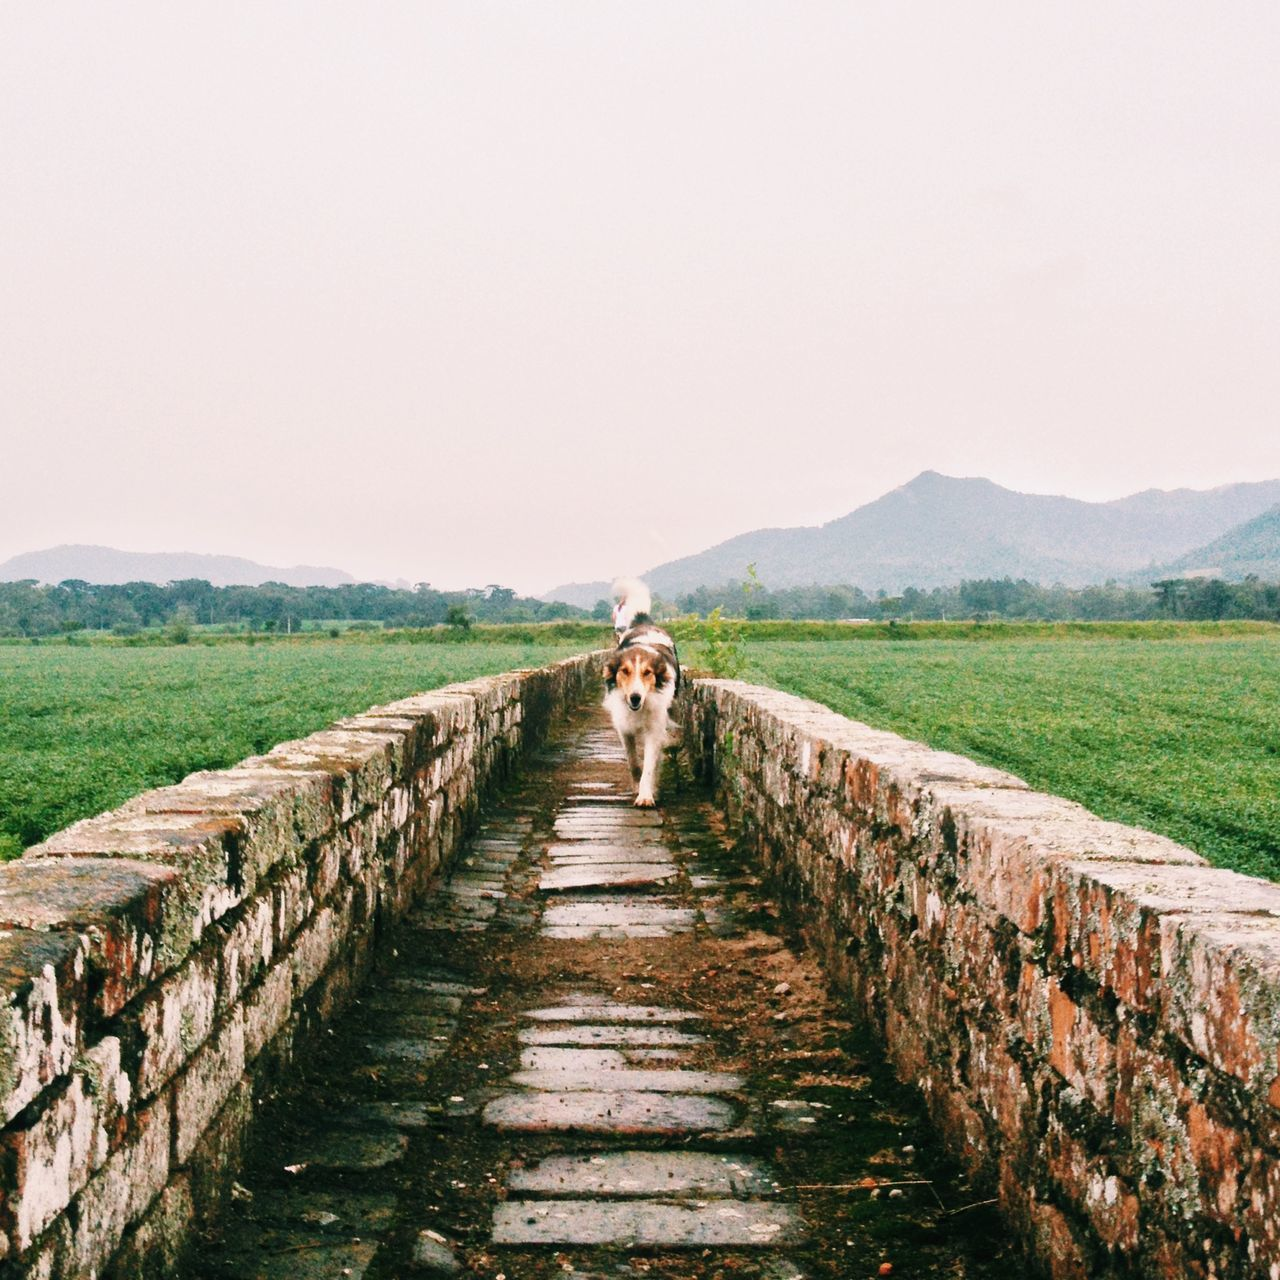 Dog on the Brick Pathway Adapted To The City Agriculture Beauty In Nature Clear Sky Day Dog Landscape Mammal Nature One Person Outdoors Pathway People Real People Rural Scene Sky The Way Forward